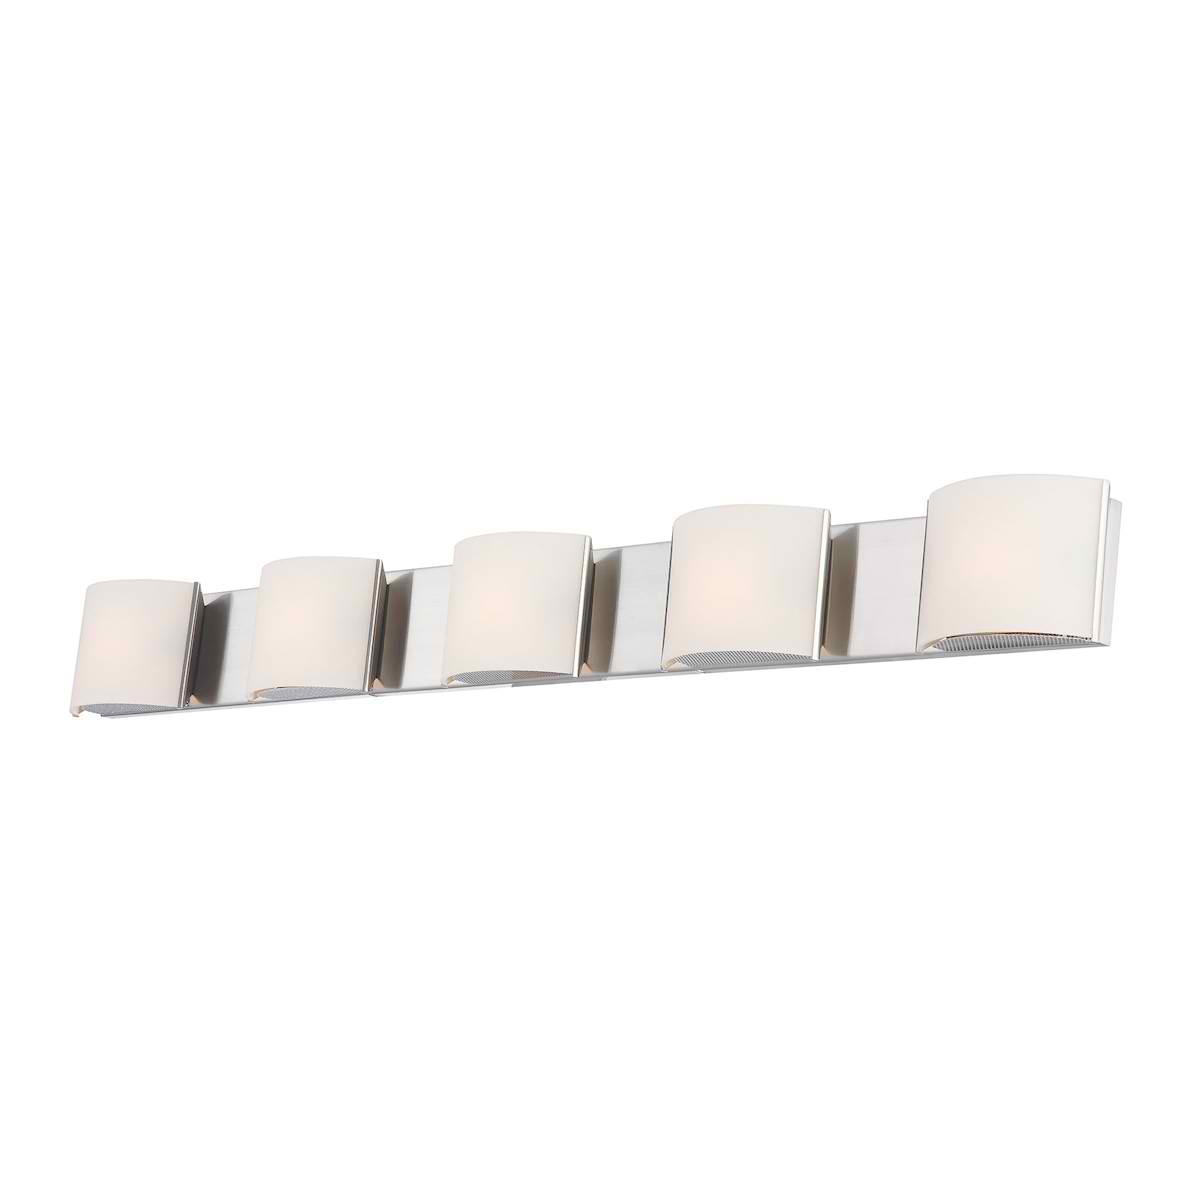 Pandora 5-Light Bath and Vanity with White Opal Glass and Chrome Finish